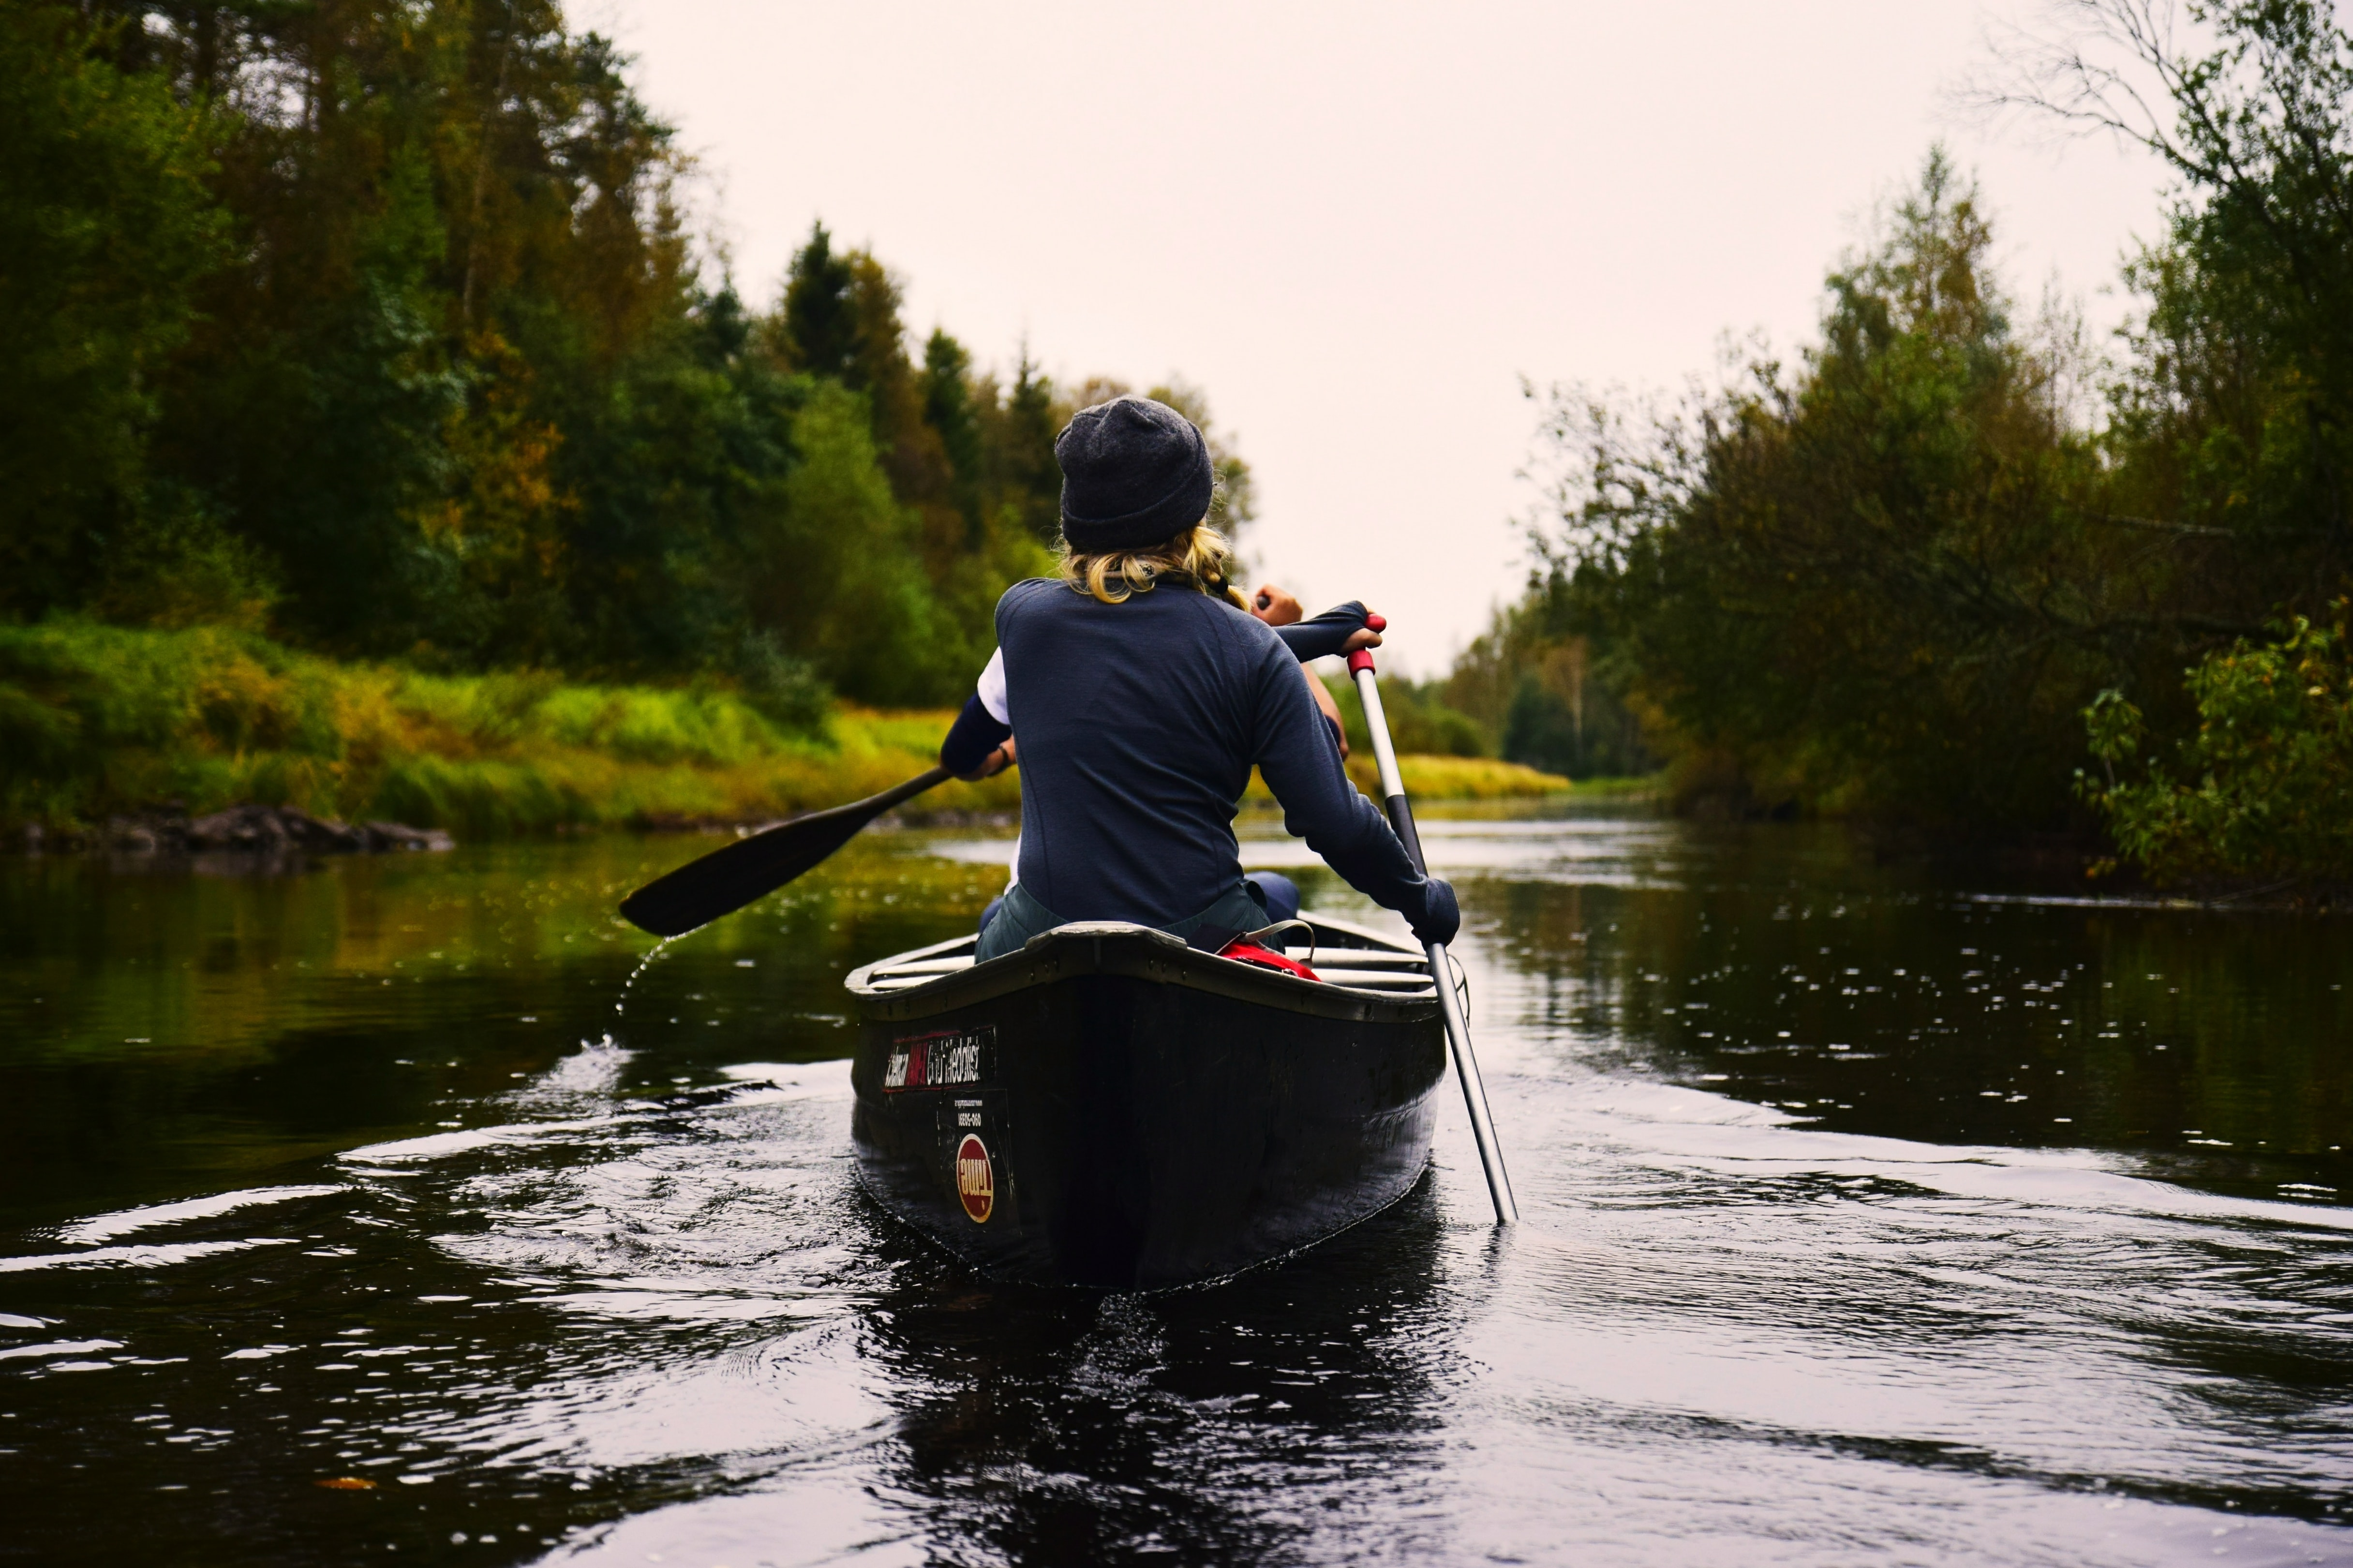 person in blue long-sleeved shirt sitting on kayak while paddling on body of water during daytime